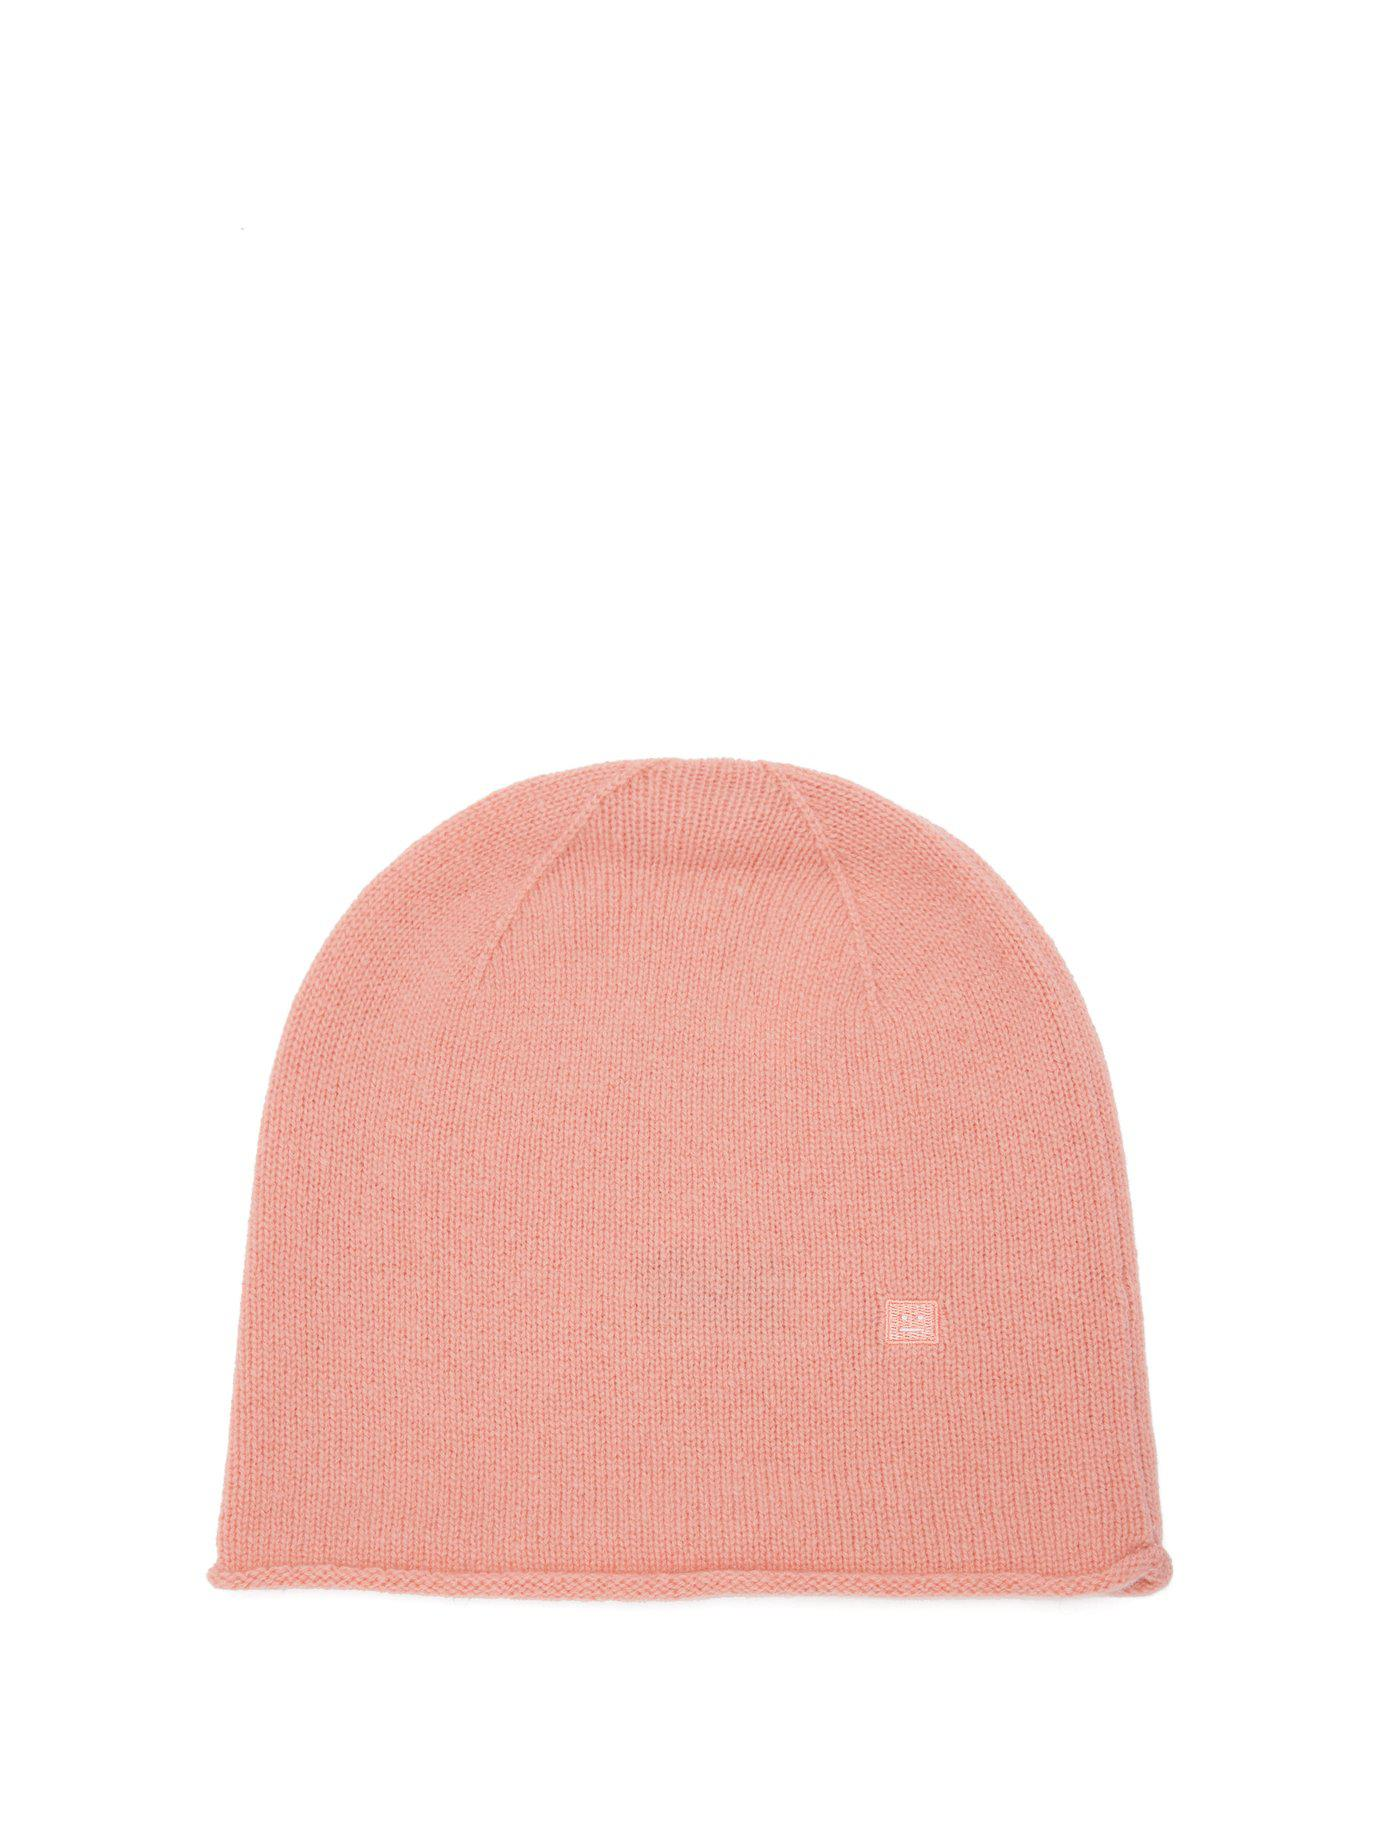 aac397b8c9a Lyst - Acne Studios Pansy S Face Wool Beanie Hat in Pink